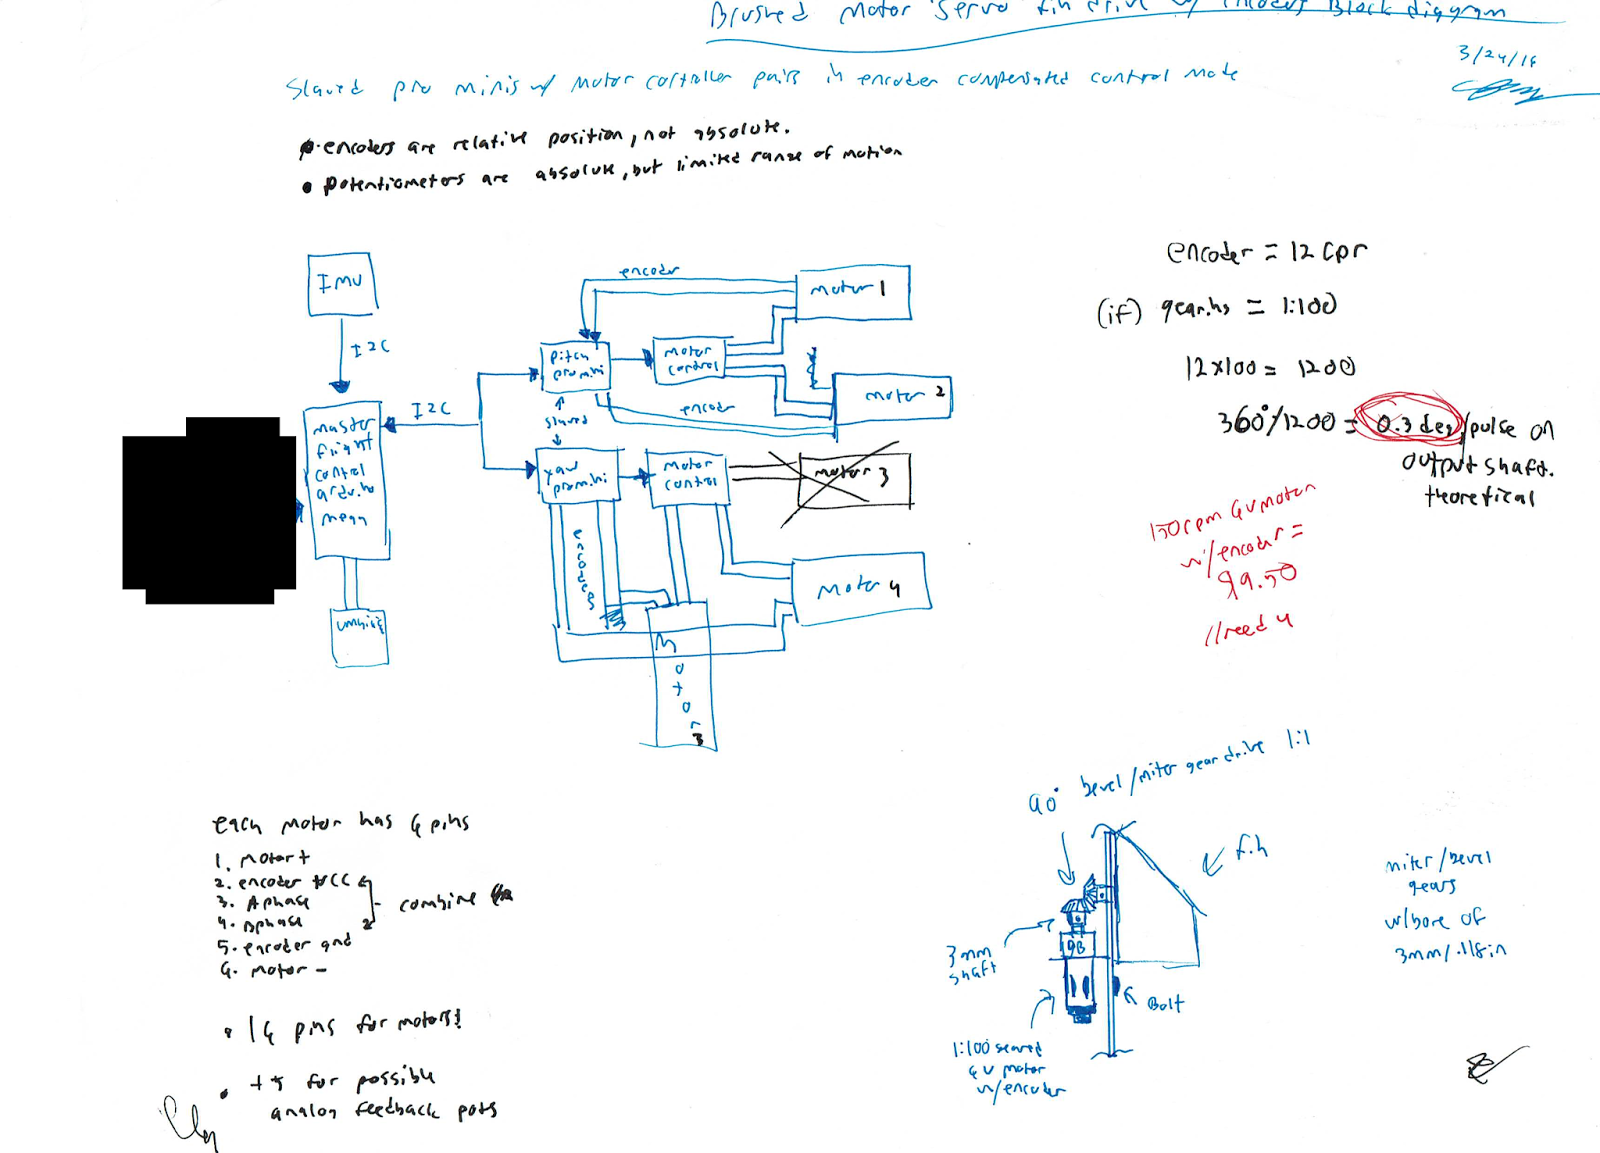 Basic system block diagram with in-progress notes [Blackbox project note censored for safety]